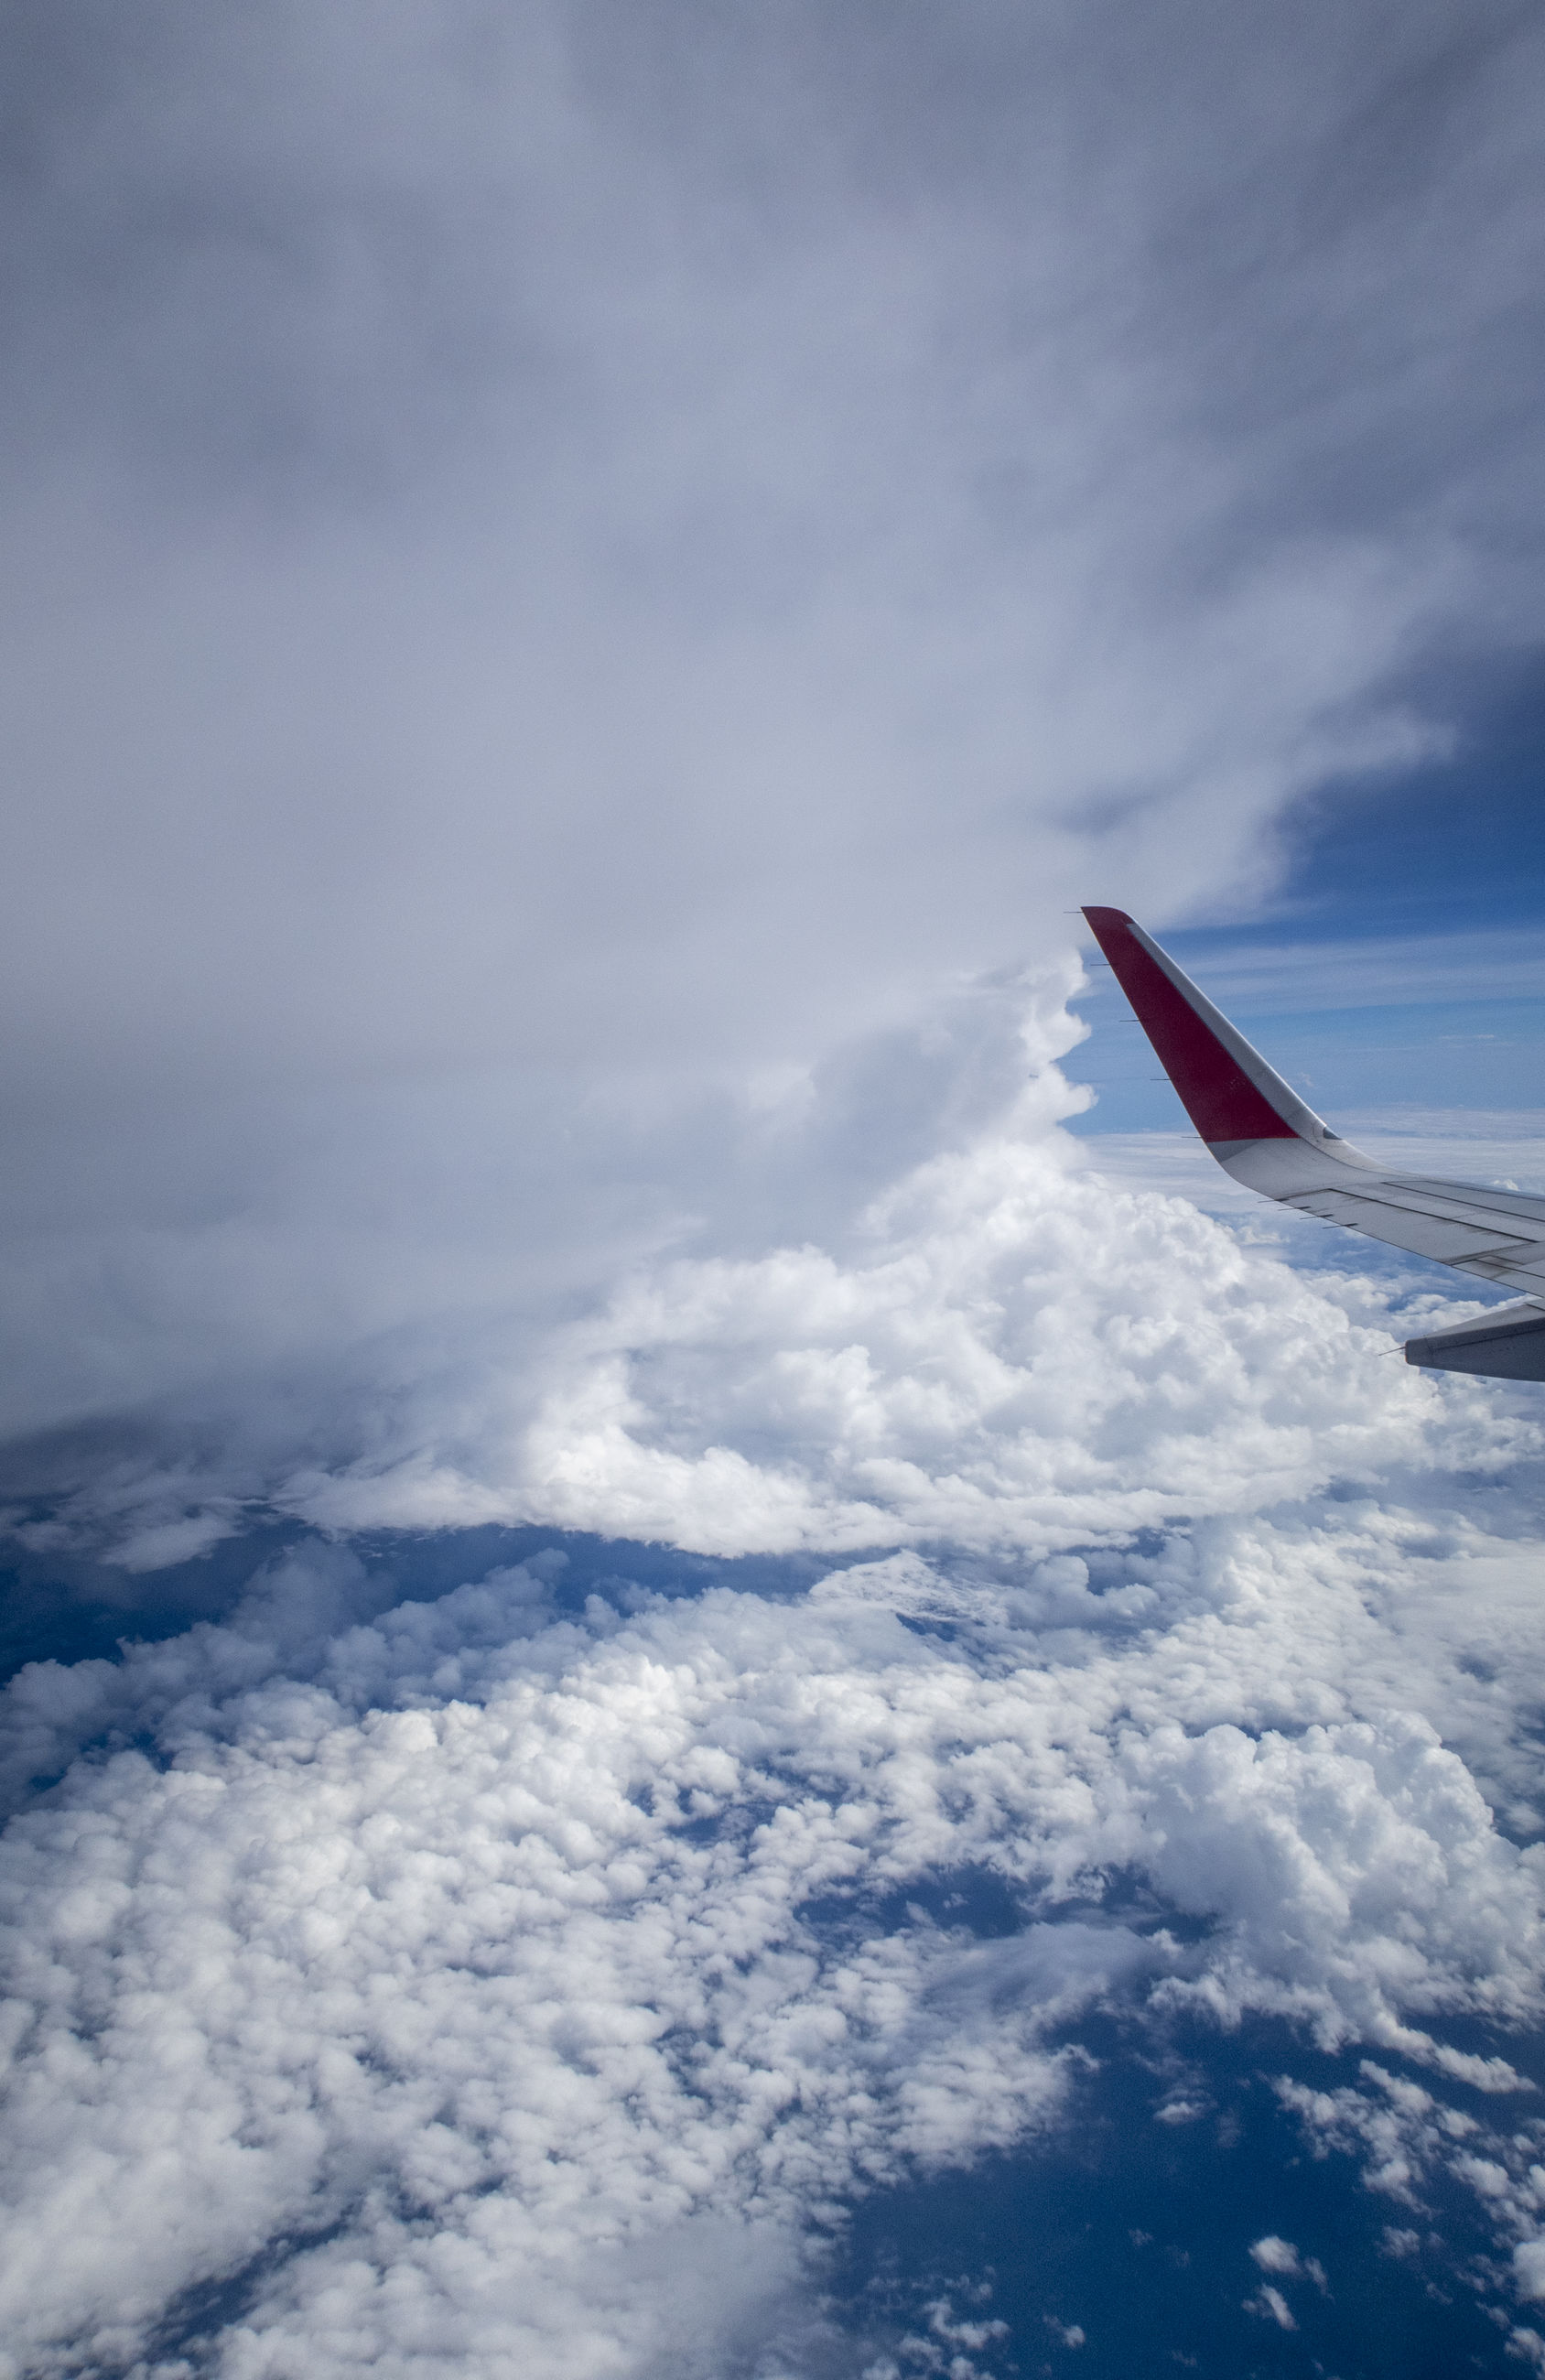 AERIAL VIEW OF CLOUDSCAPE OVER AIRPLANE